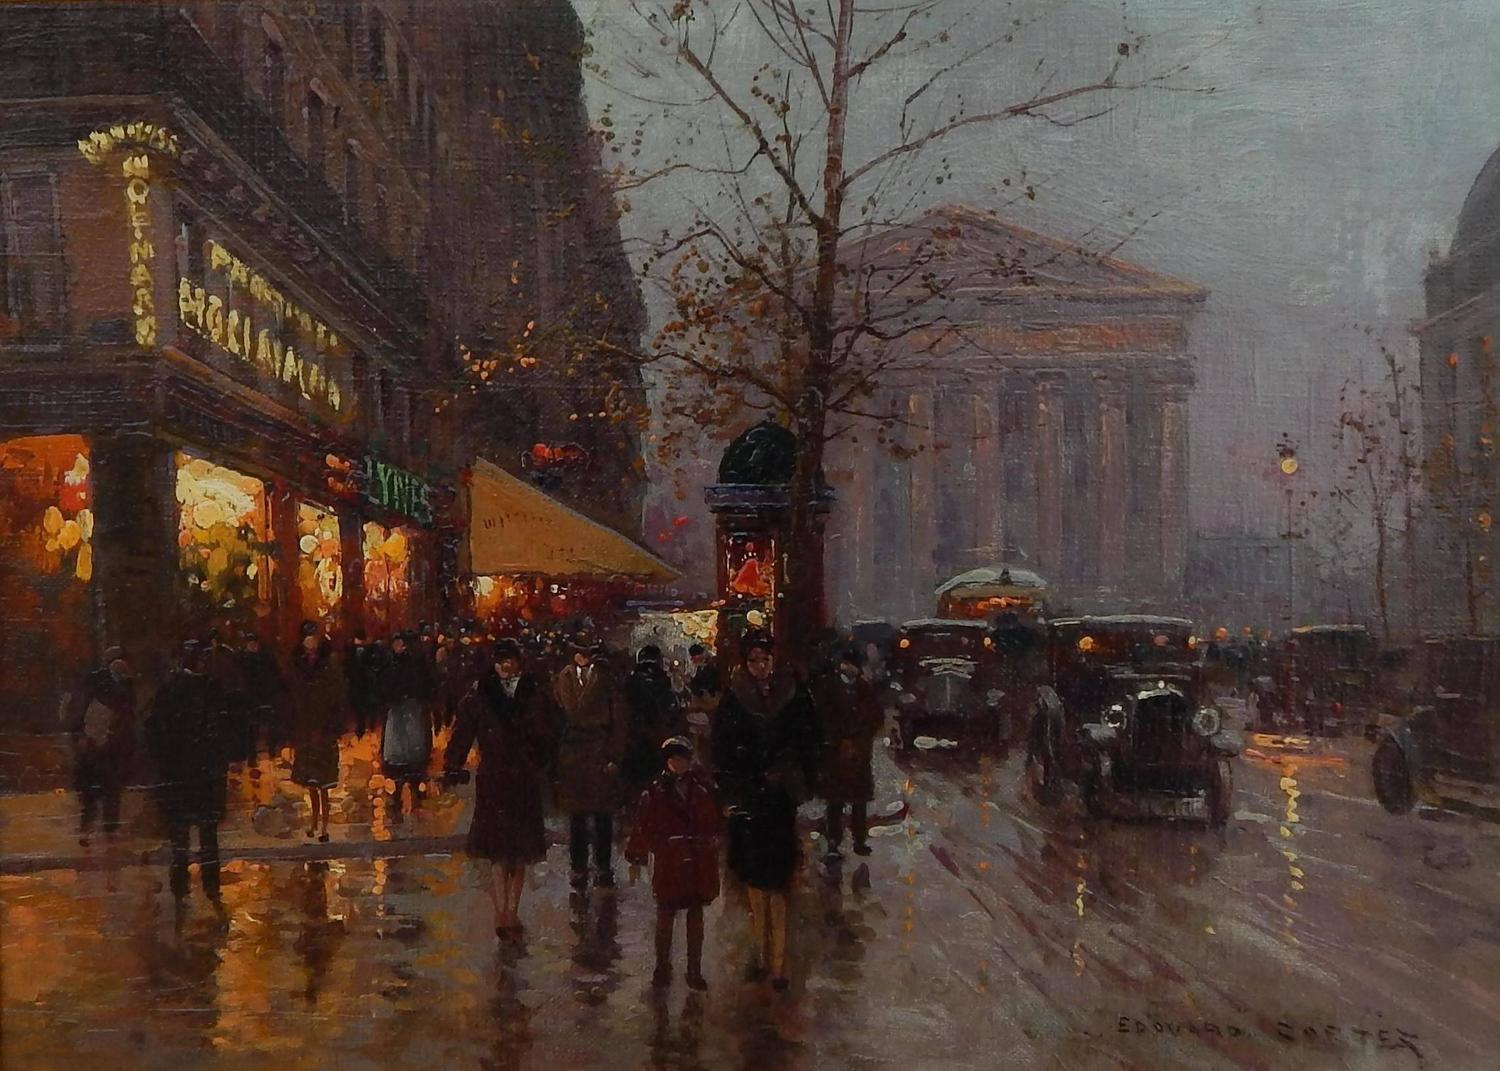 Edouard Leon Cortes Oil on Canvas, Rue Royale, Paris For Sale at 1stdibs